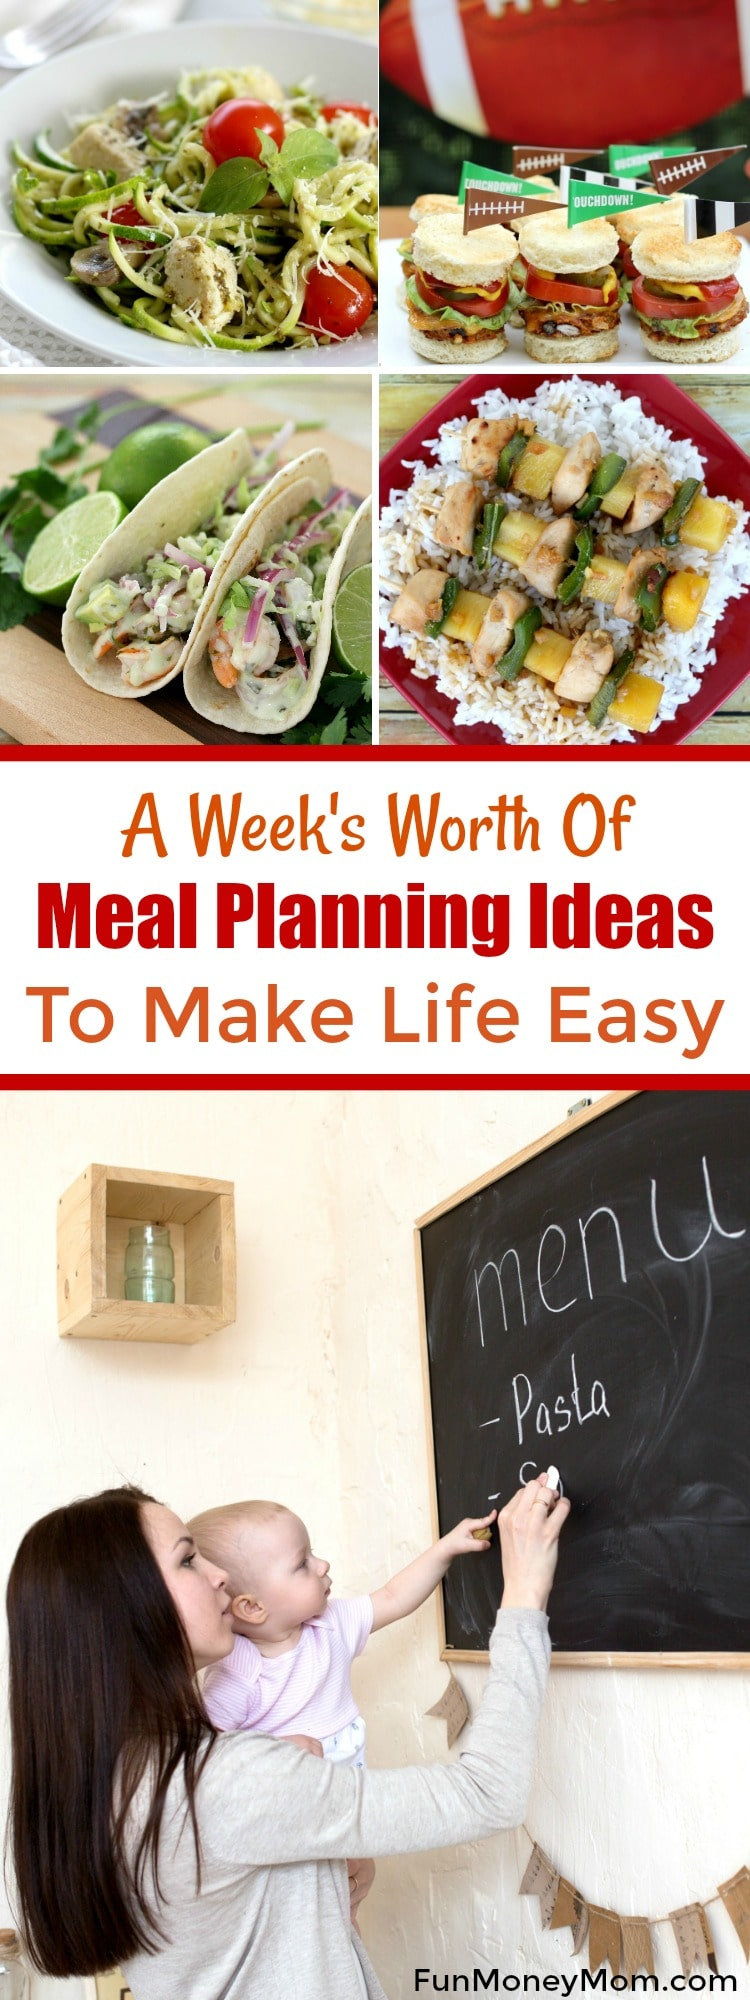 Want to simplify your life? Menu planning makes life so easy! When you plan out your dinner recipes ahead of time,you don't have to make multiple trips to the grocery store so you save money. Check out these yummy meal planning ideas to get started.